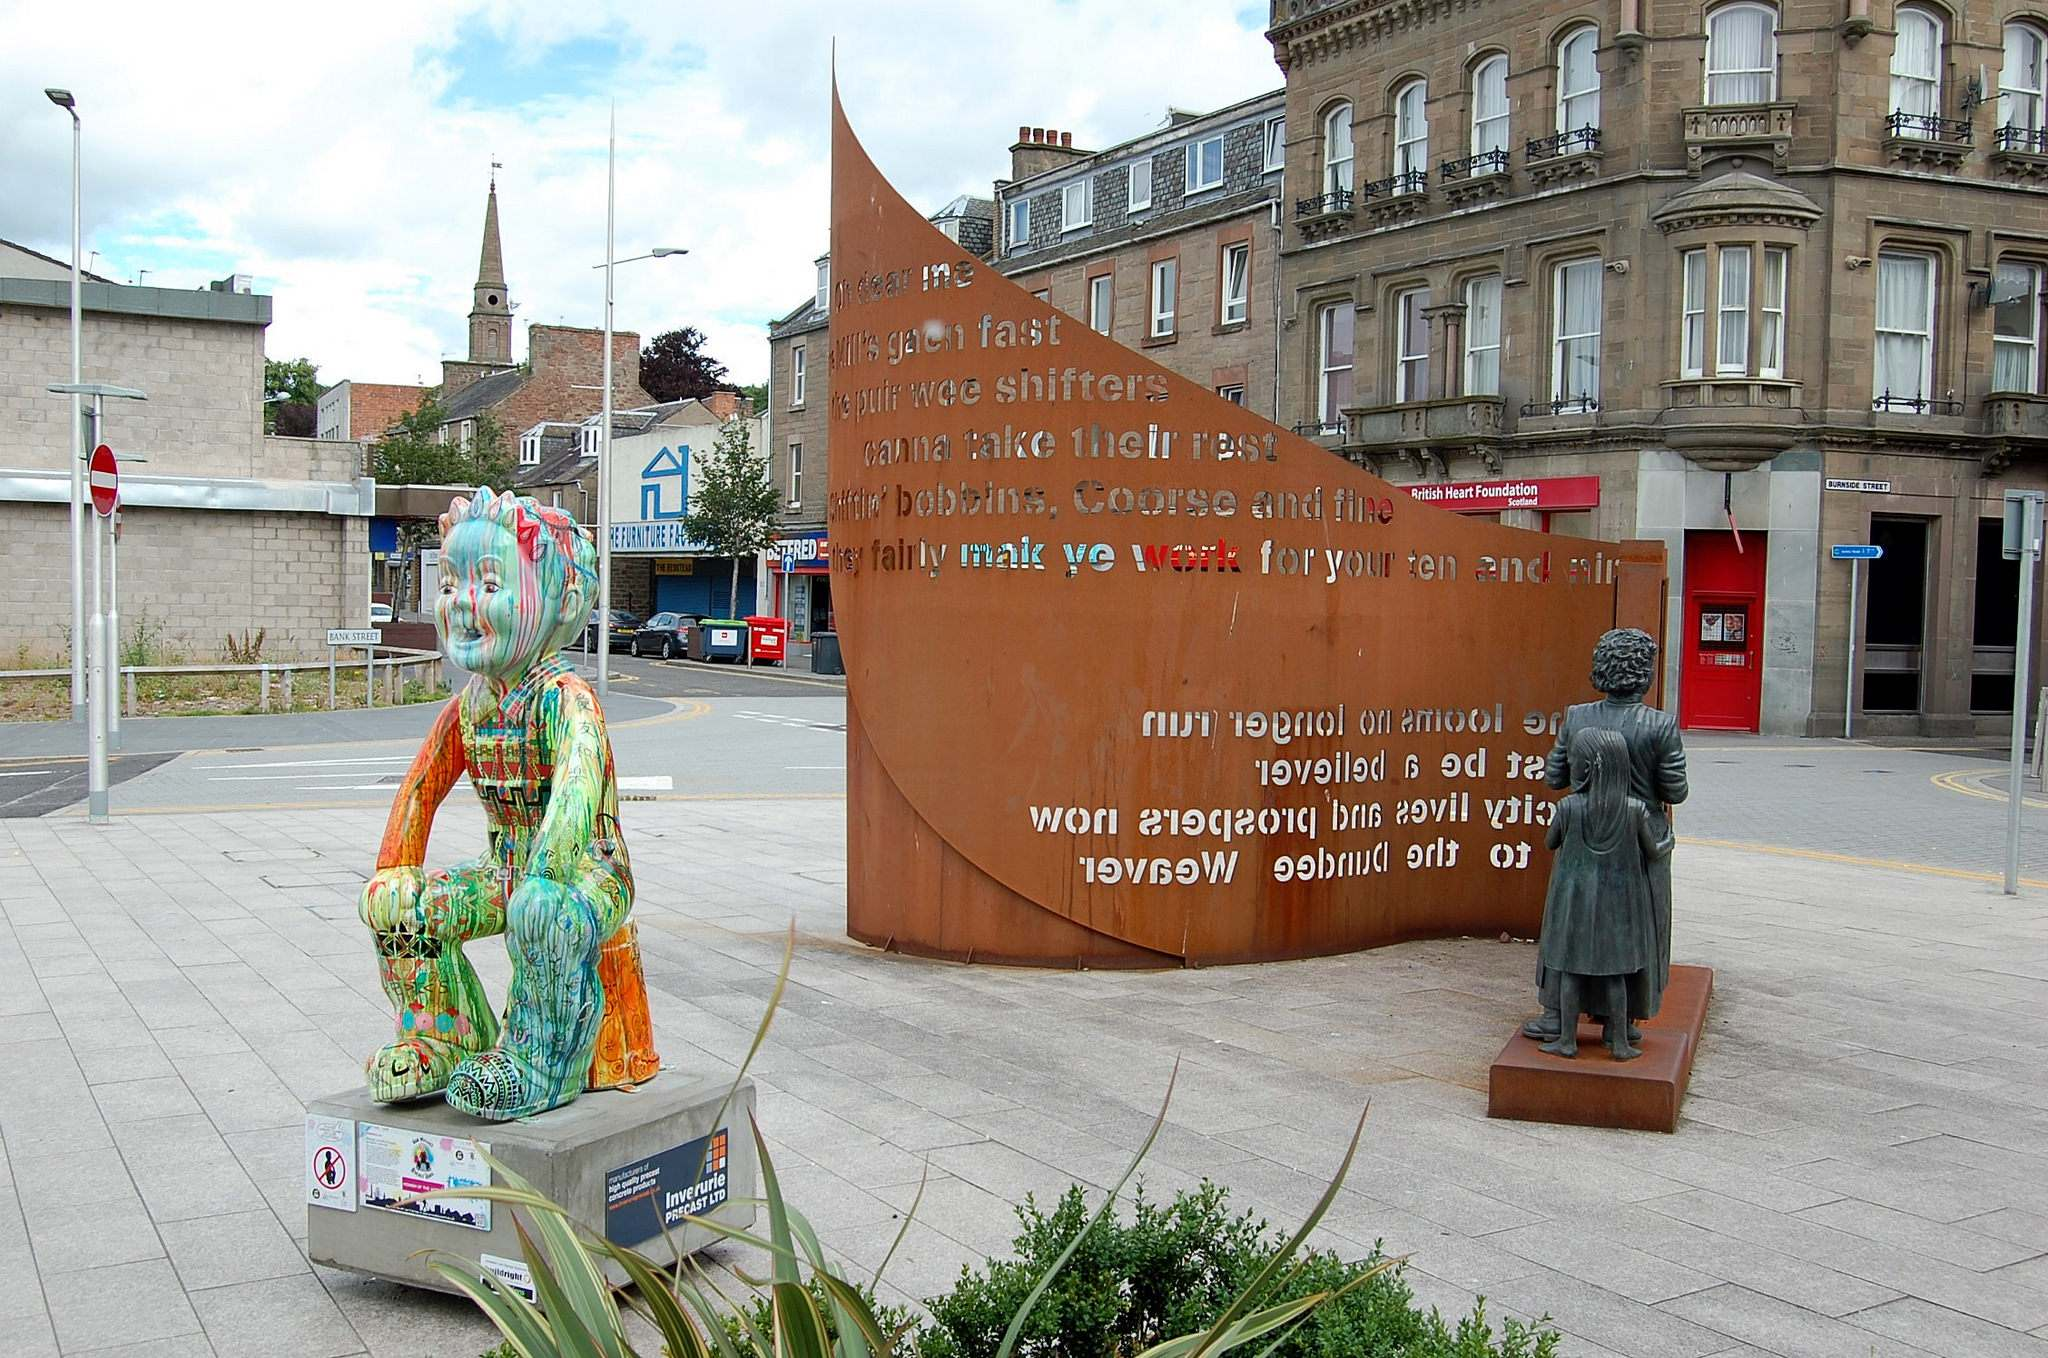 wullie23 Oor Wullie Bucket Trail in City of Dundee